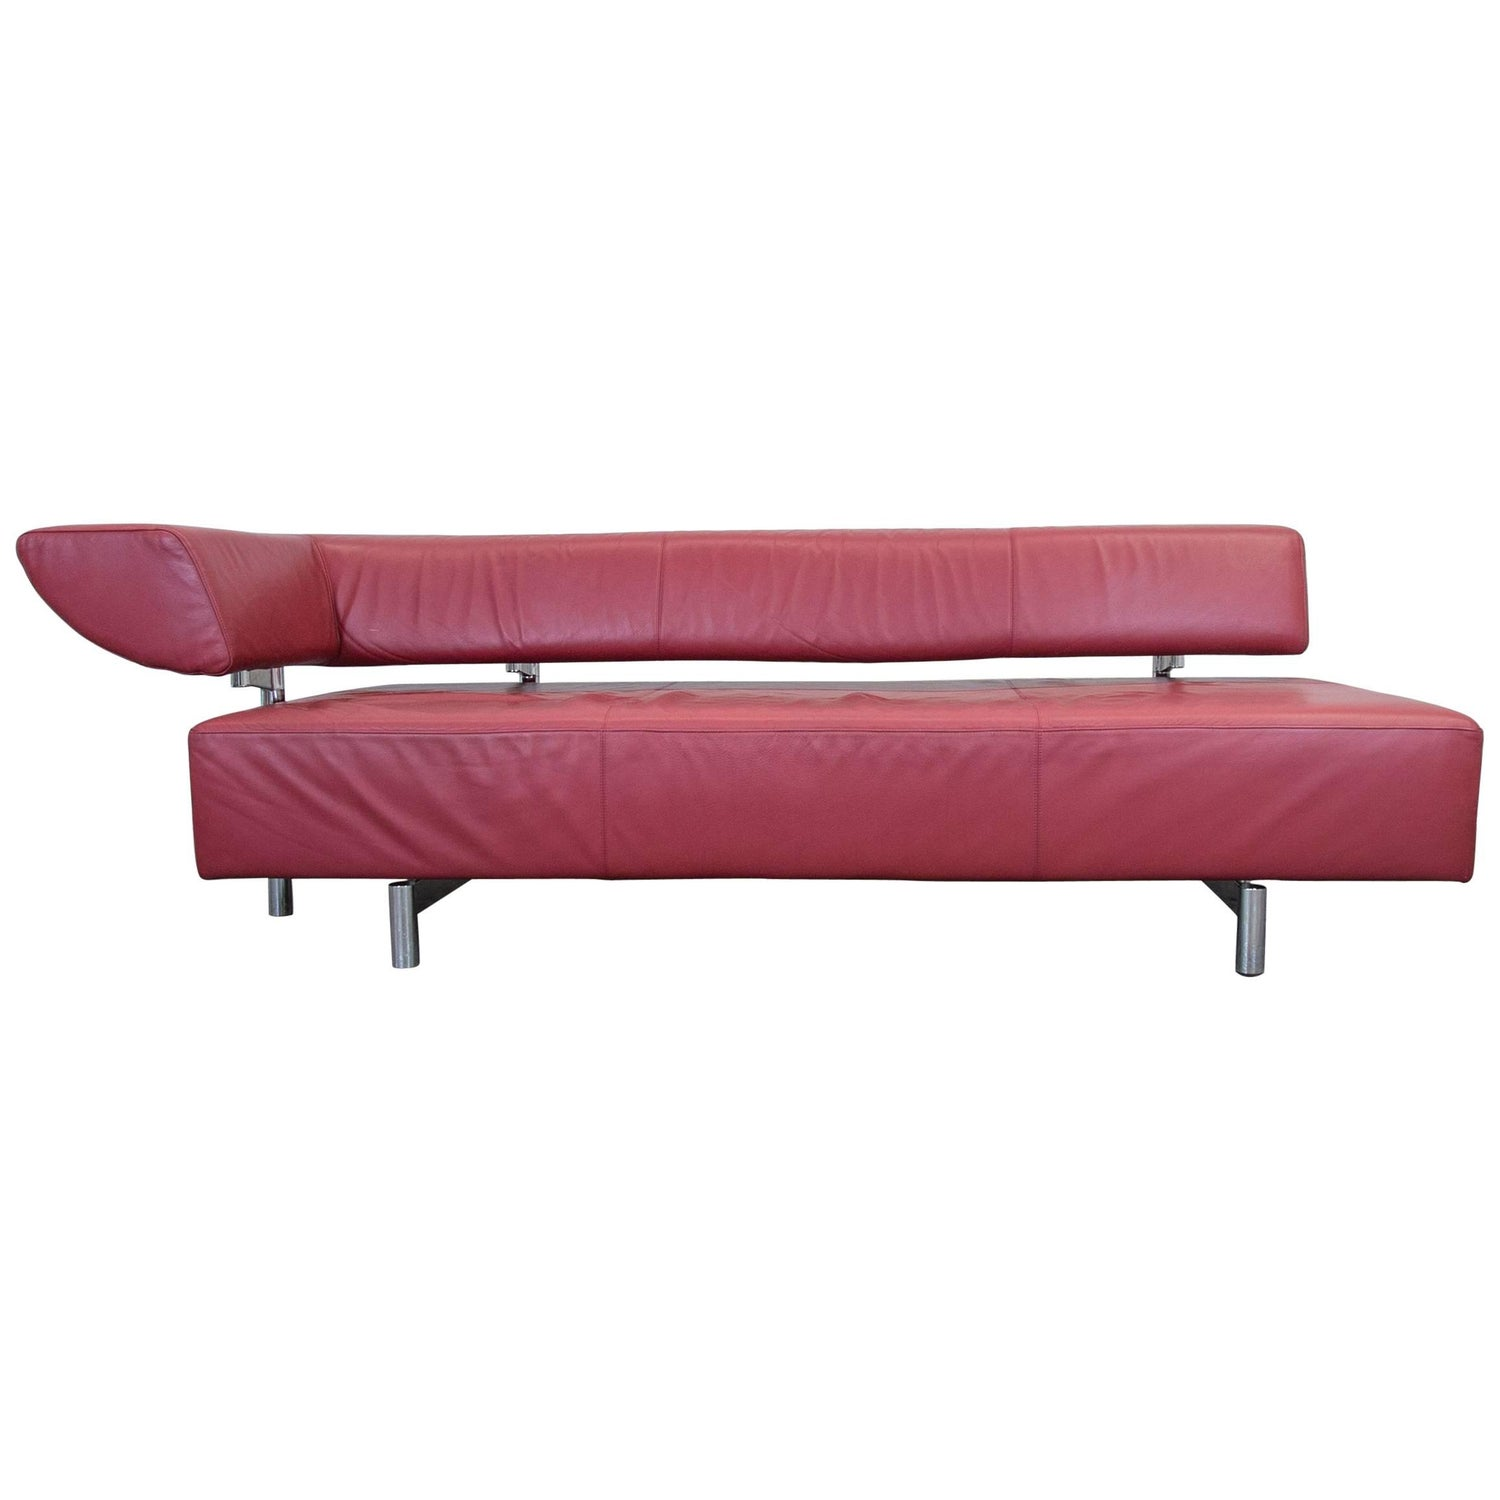 COR Arthe Designer Leather Sofa Red Three Seat Couch Recamiere